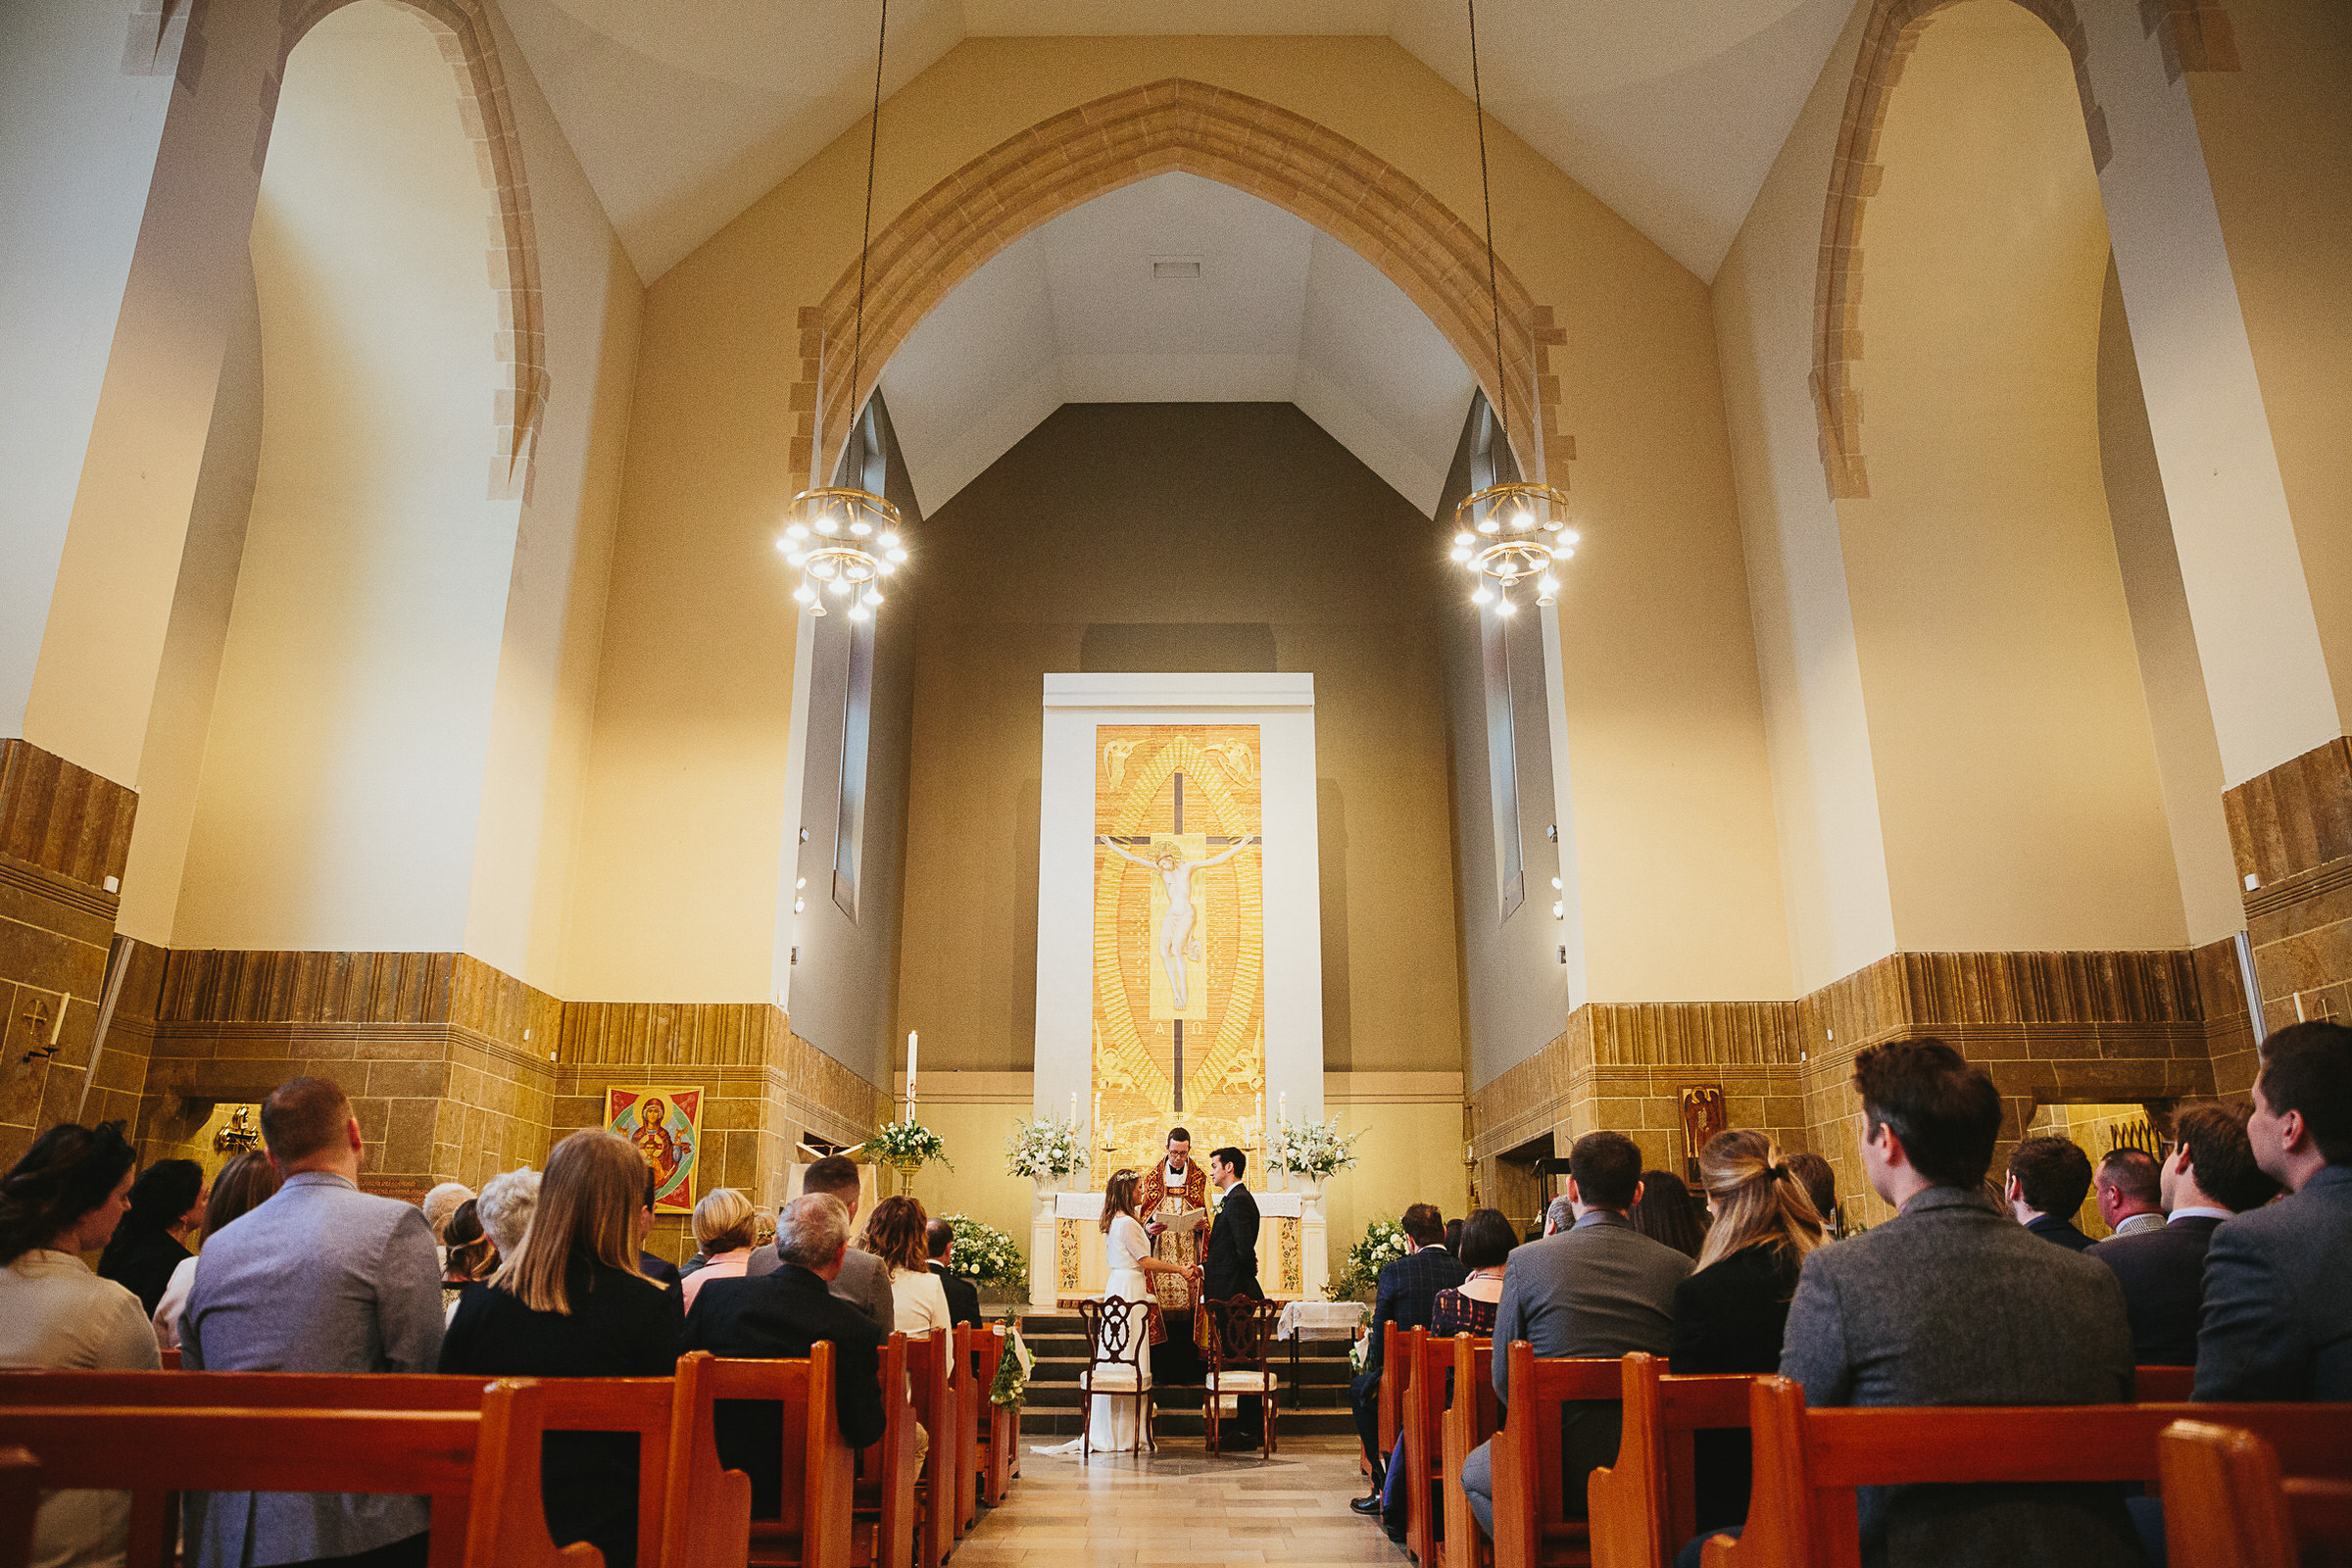 Our Lady of Victories Kensington wedding